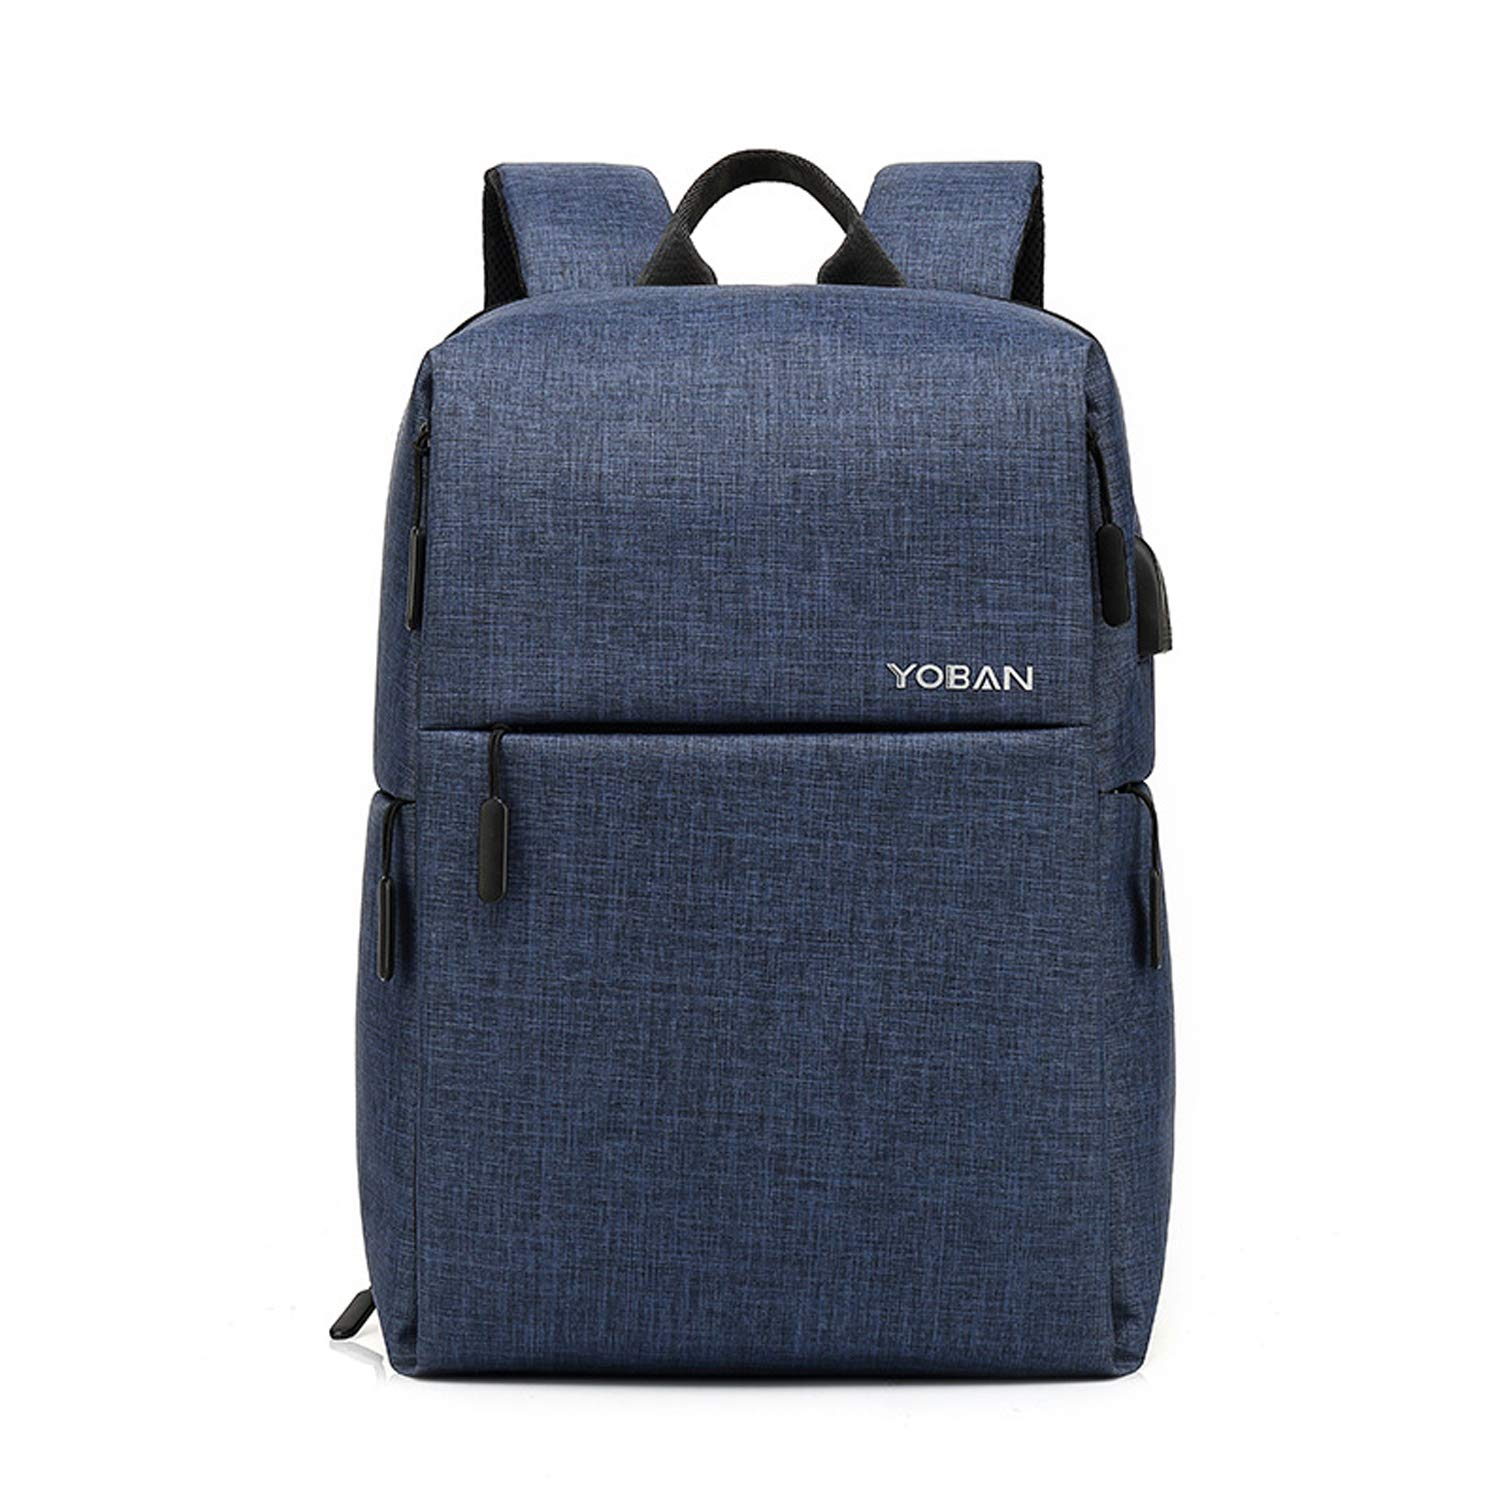 blueee Travel Laptop Backpack for School Trip Travel Men's Casual Business Backpack with USB Charging Port Waterproof Suitable for 14 Inches Laptop